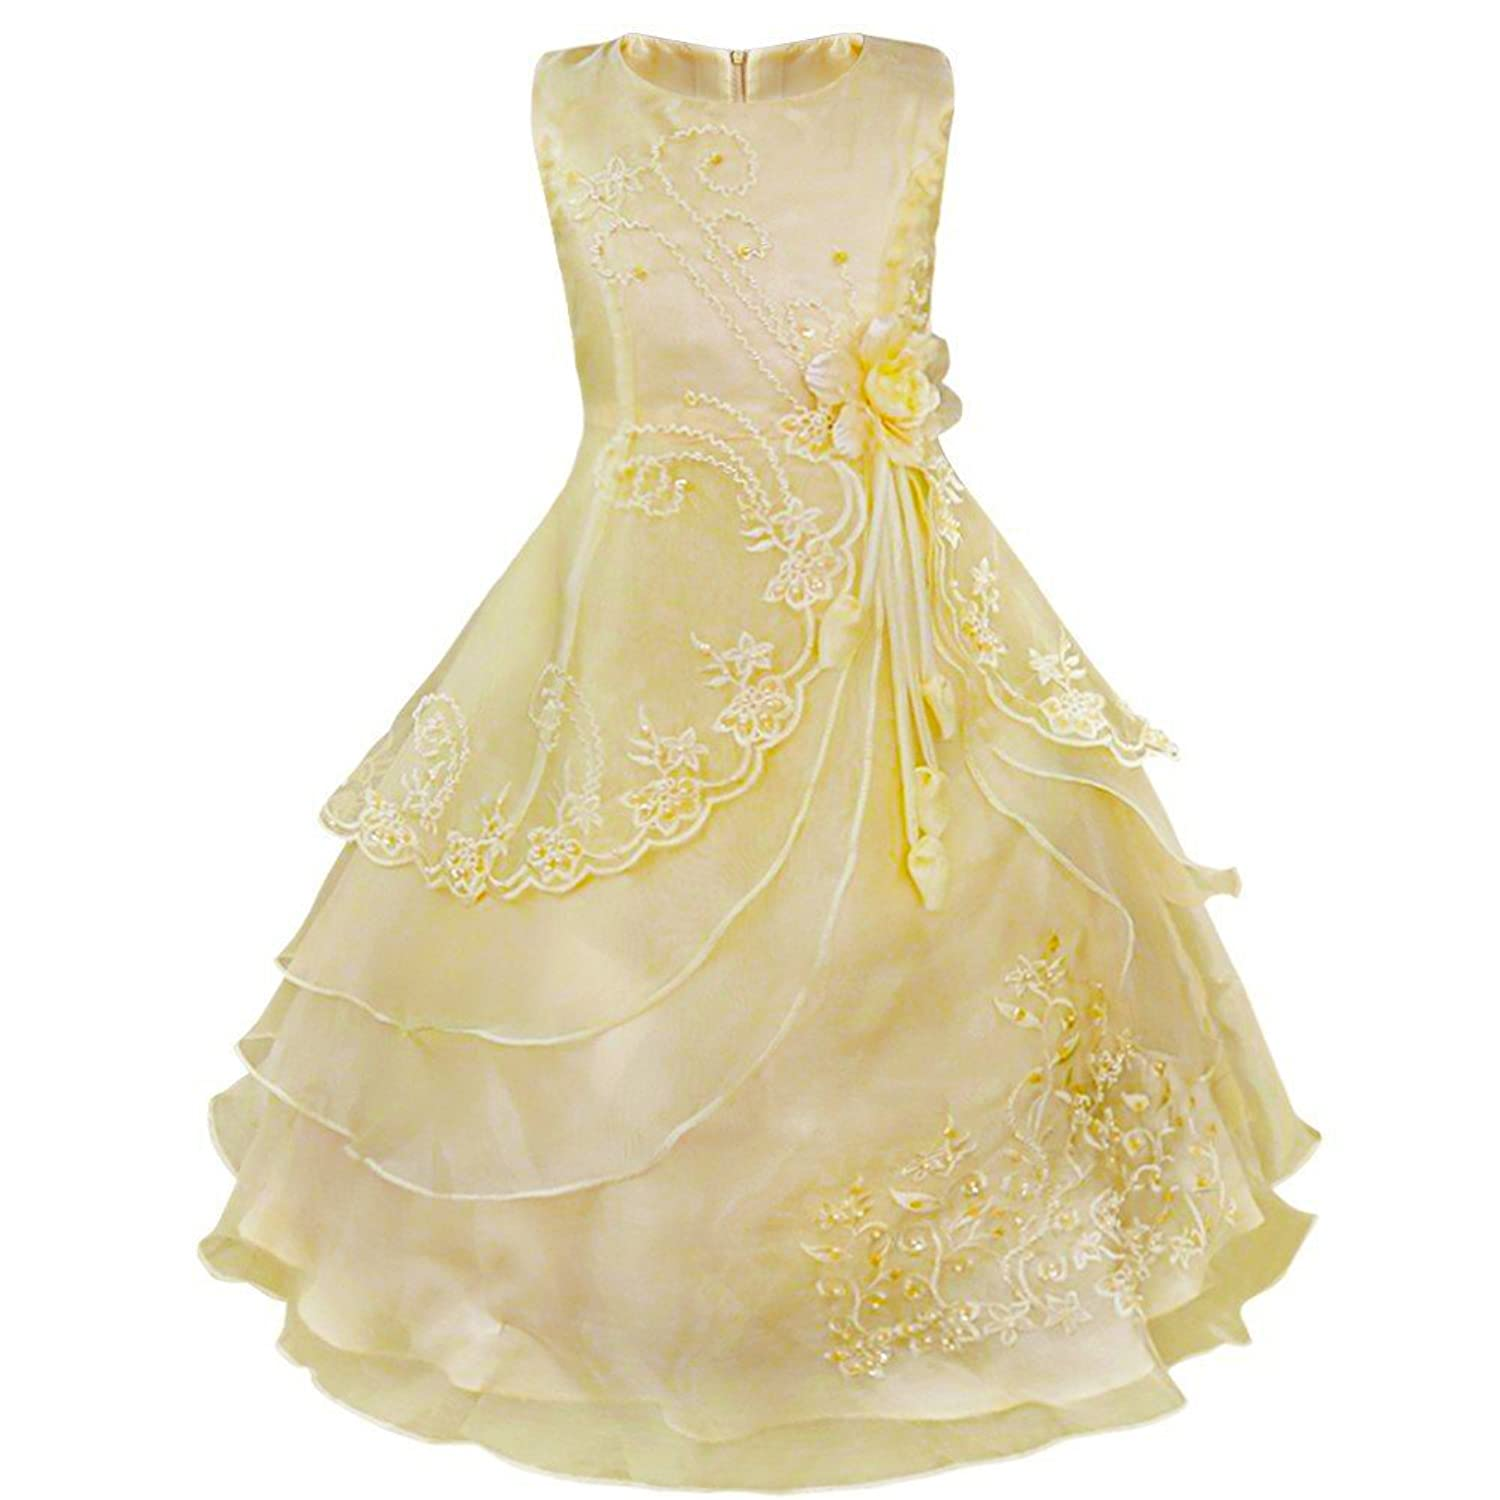 """Rita"" Girls Layered Hooped Embroidered Dress - Gold 4-5yrs"